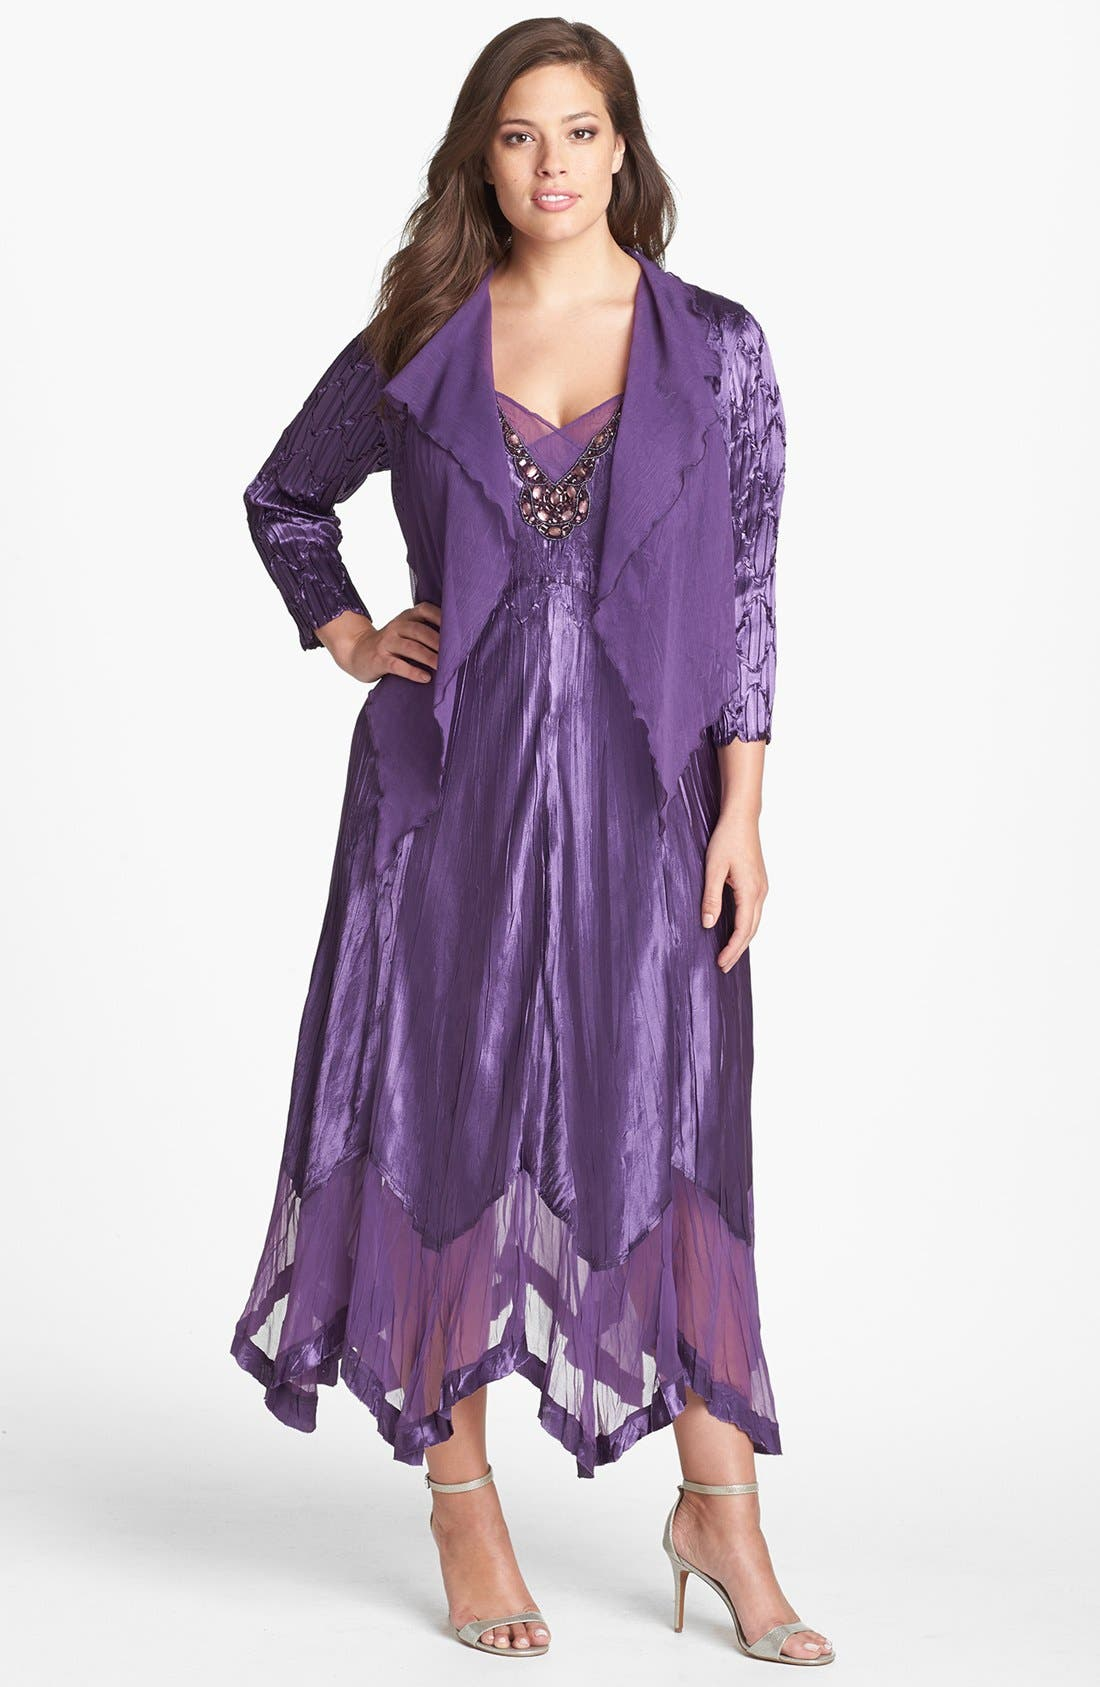 Alternate Image 1 Selected - Komarov Chiffon Trim Charmeuse Dress & Jacket (Plus Size)